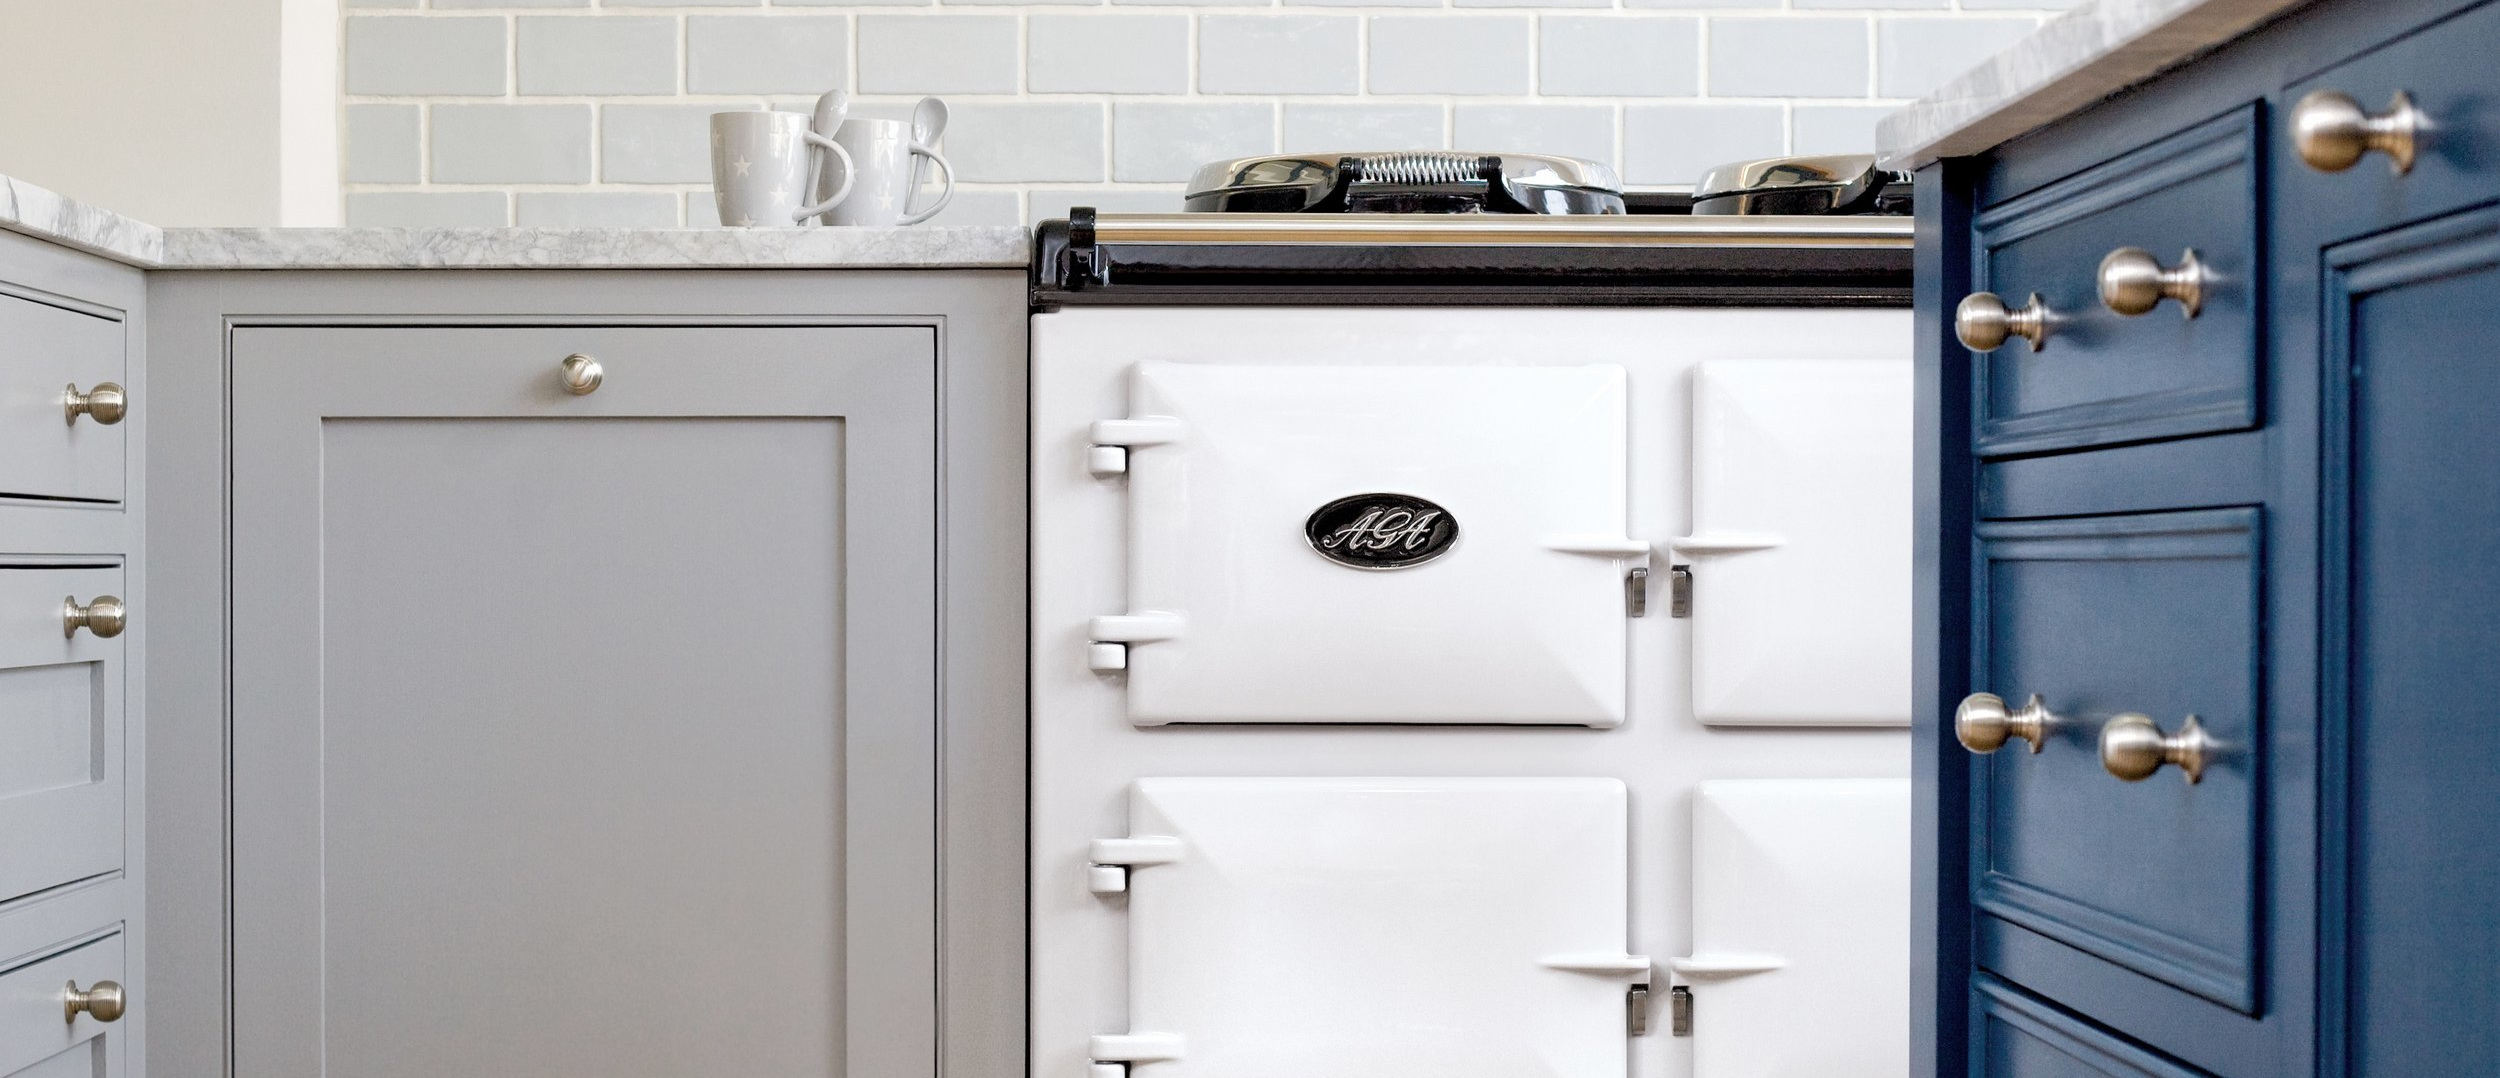 Free Home Survey - Here at Blades we like to help our customers through the journey of purchase and installation, our friendly and knowledgeable staff will happily guide you through the options available to you, from models to enamel colours. And once you've fallen in love with your AGA cooker, arrange an appointment for a free home survey.